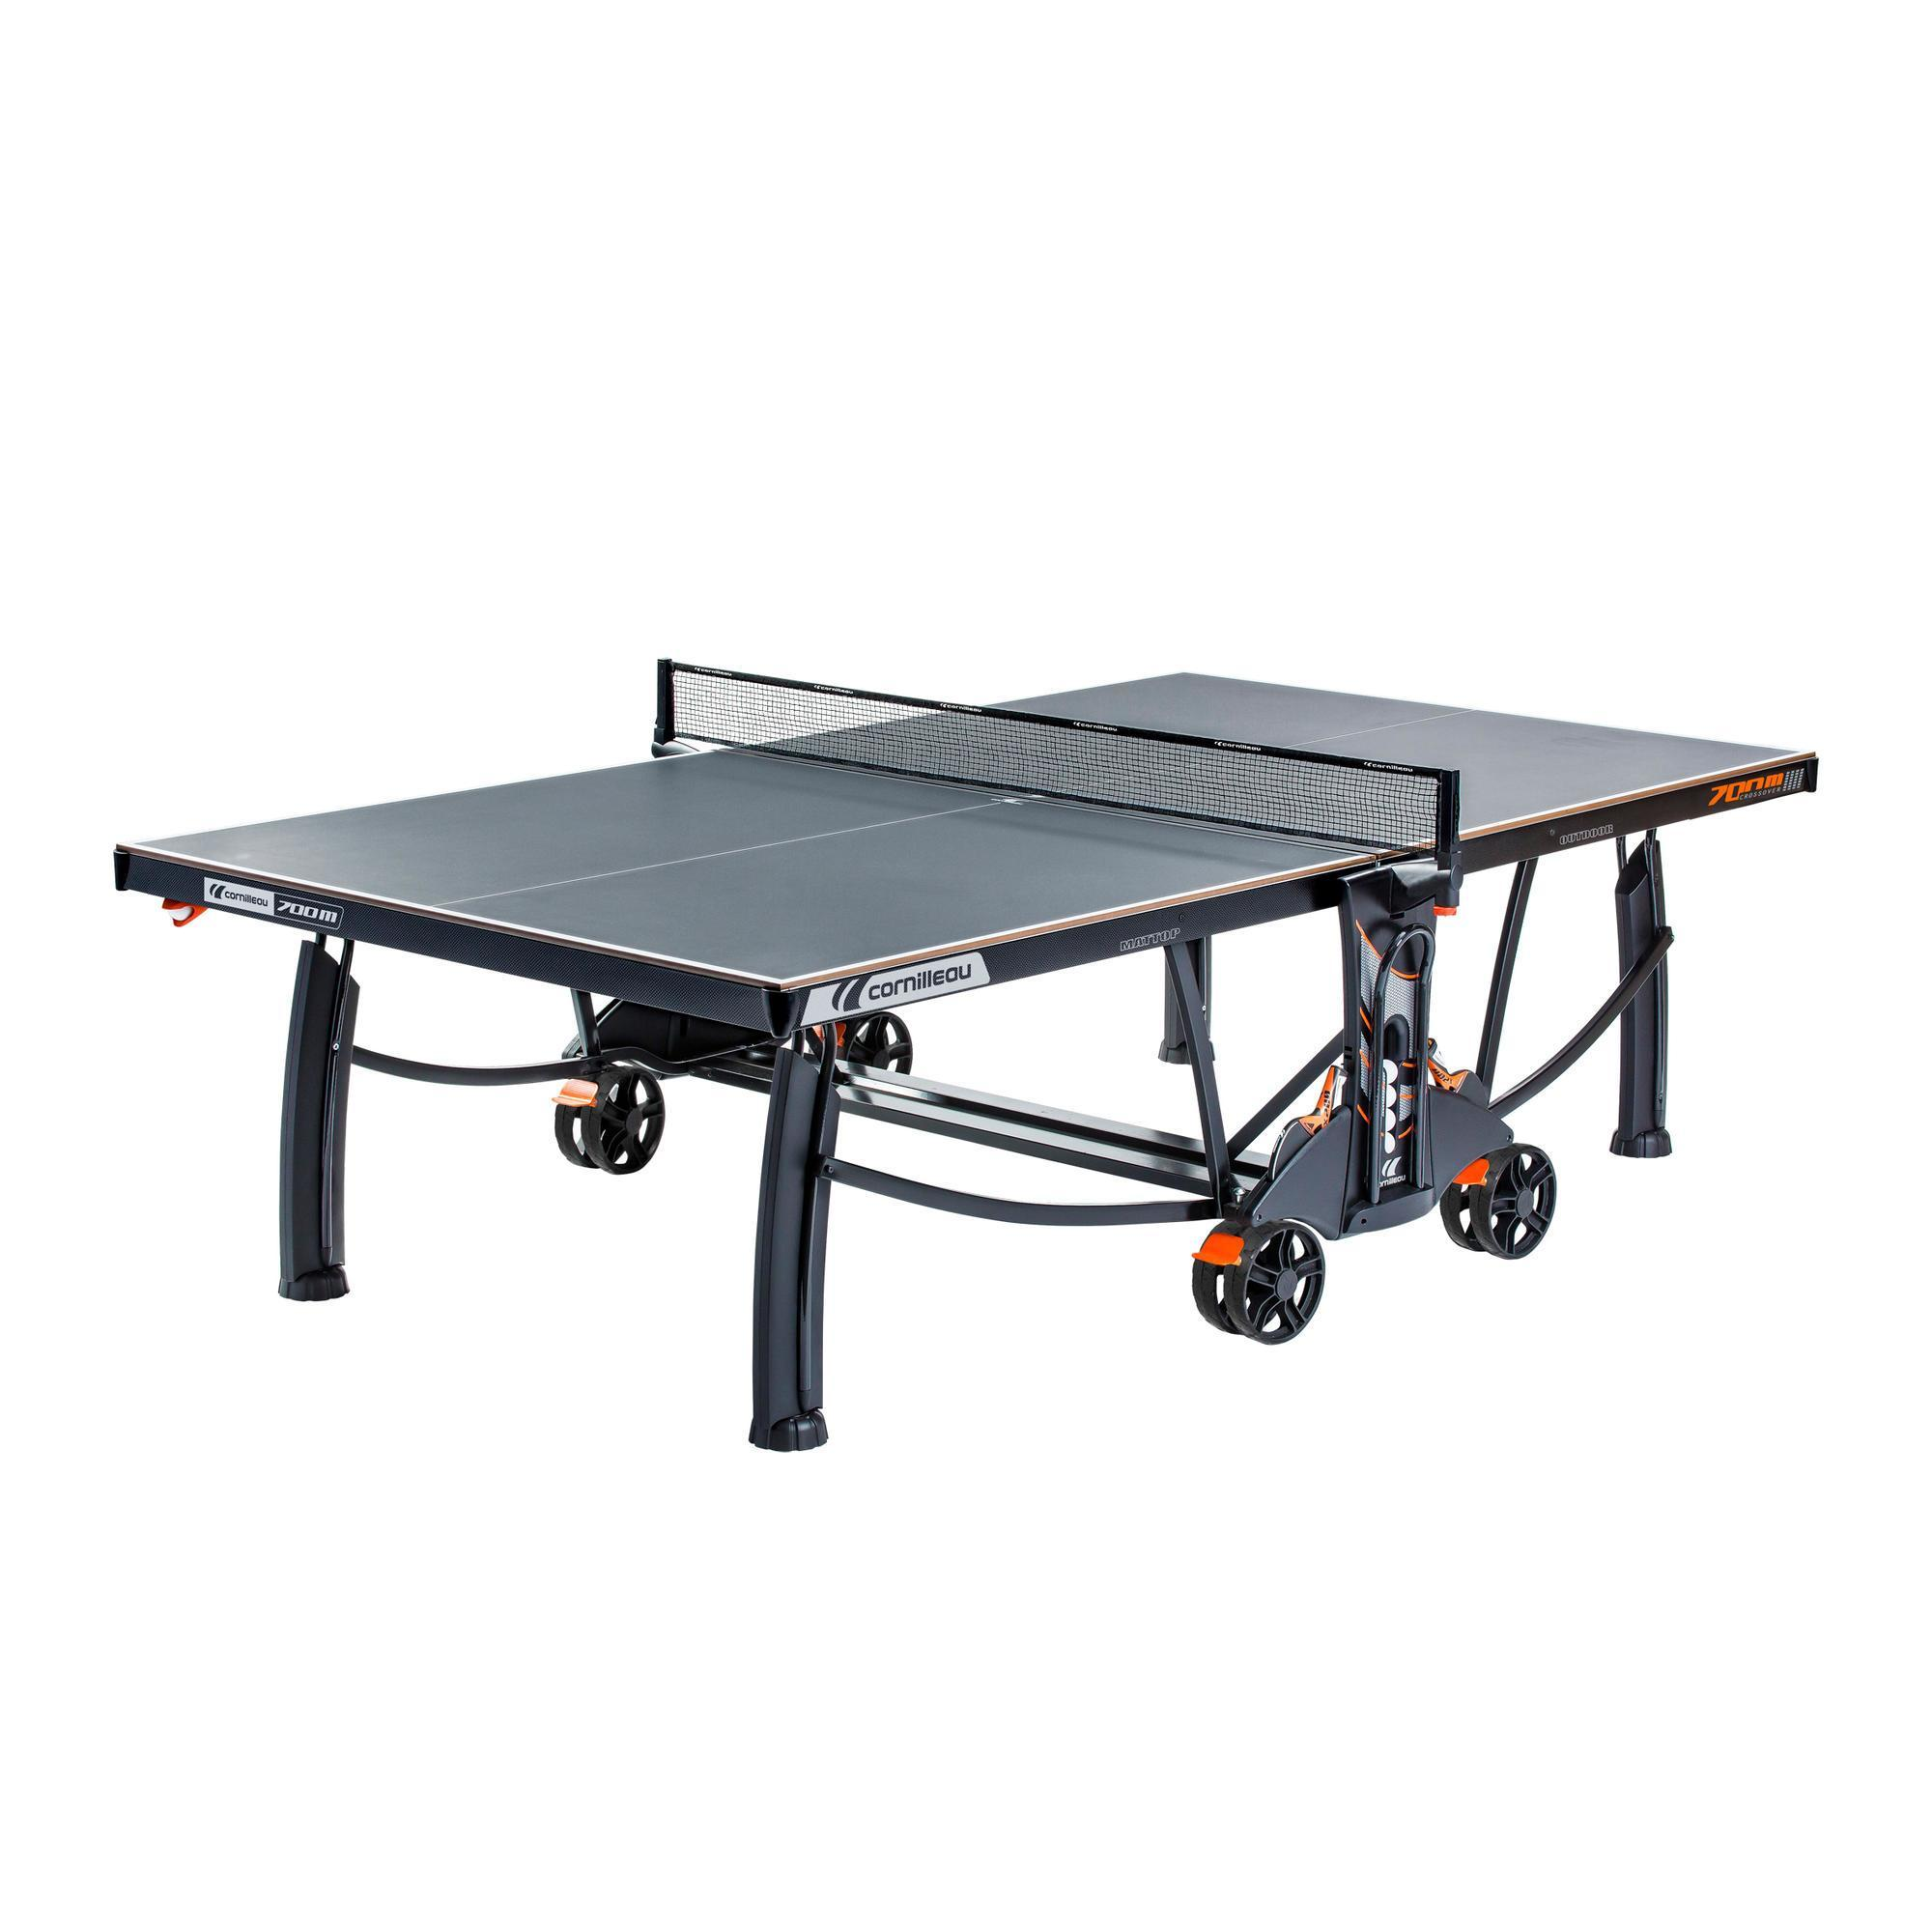 Cornilleau TABLE DE TENNIS DE TABLE FREE CROSSOVER 700M